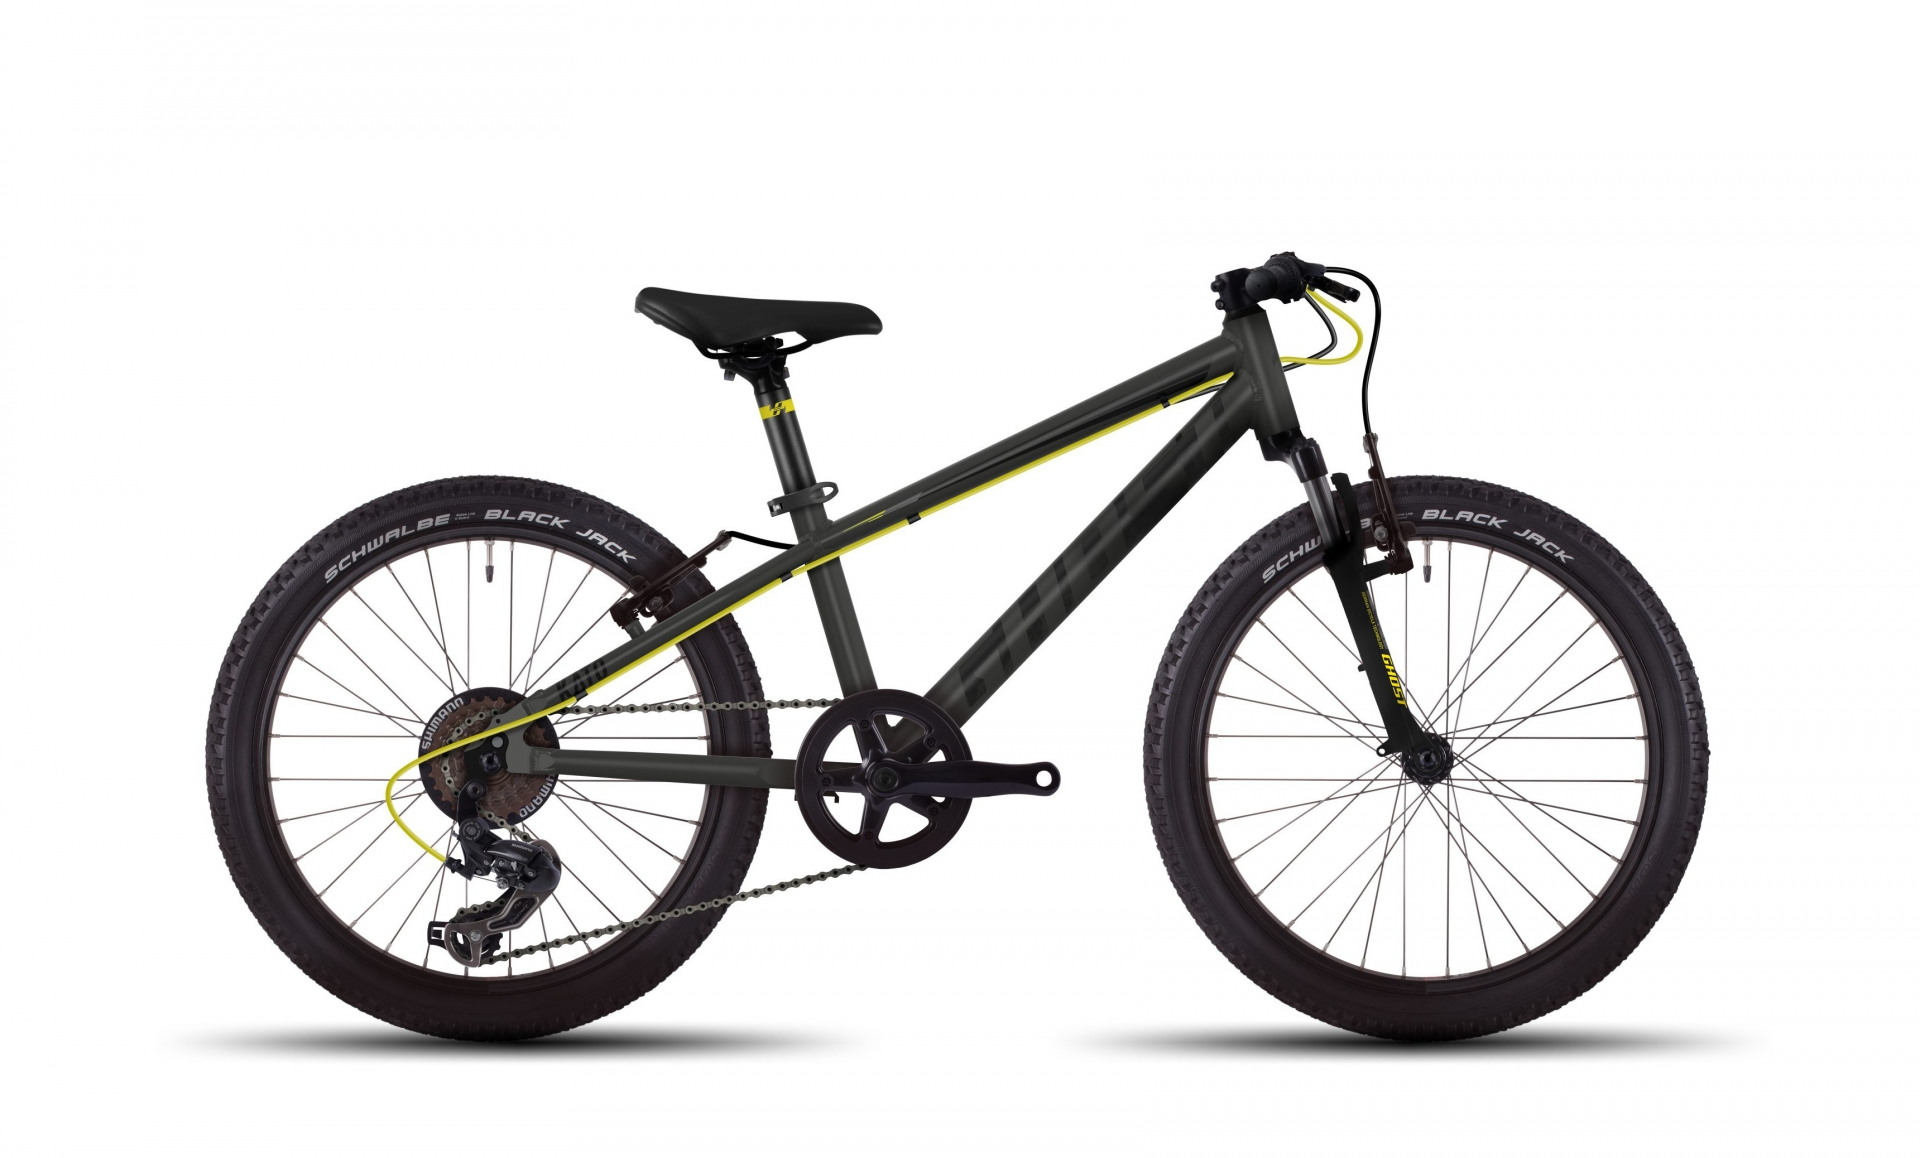 VTT semi-rigide Ghost Kato Kid 2 20 titane/jaune